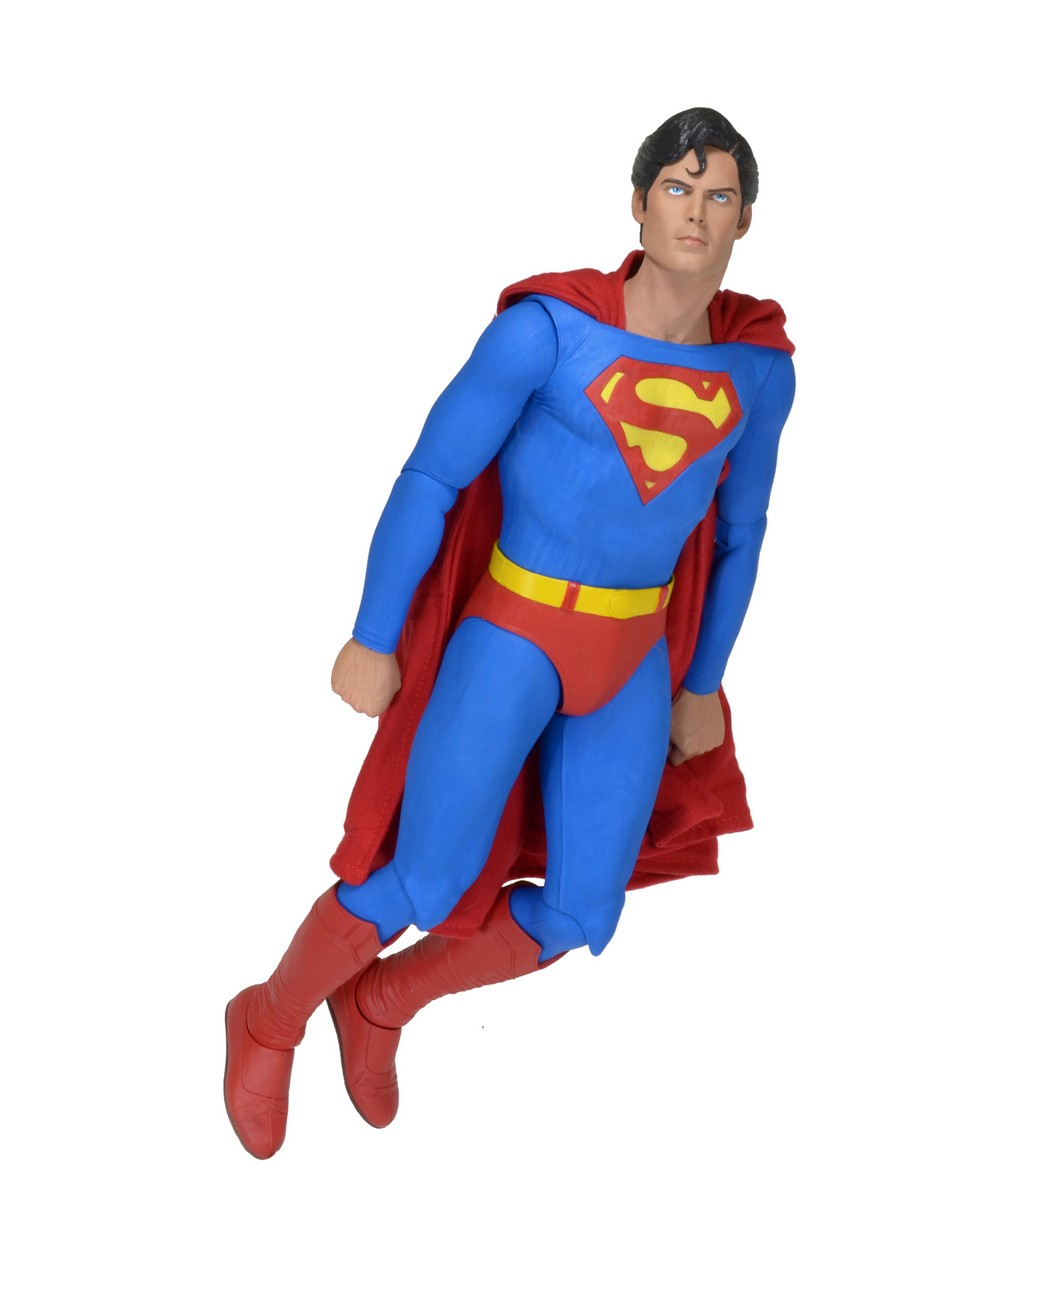 http://news.toyark.com/wp-content/uploads/sites/4/2015/06/Christopher-Reeve-18-Inch-Superman-by-NECA-003.jpg